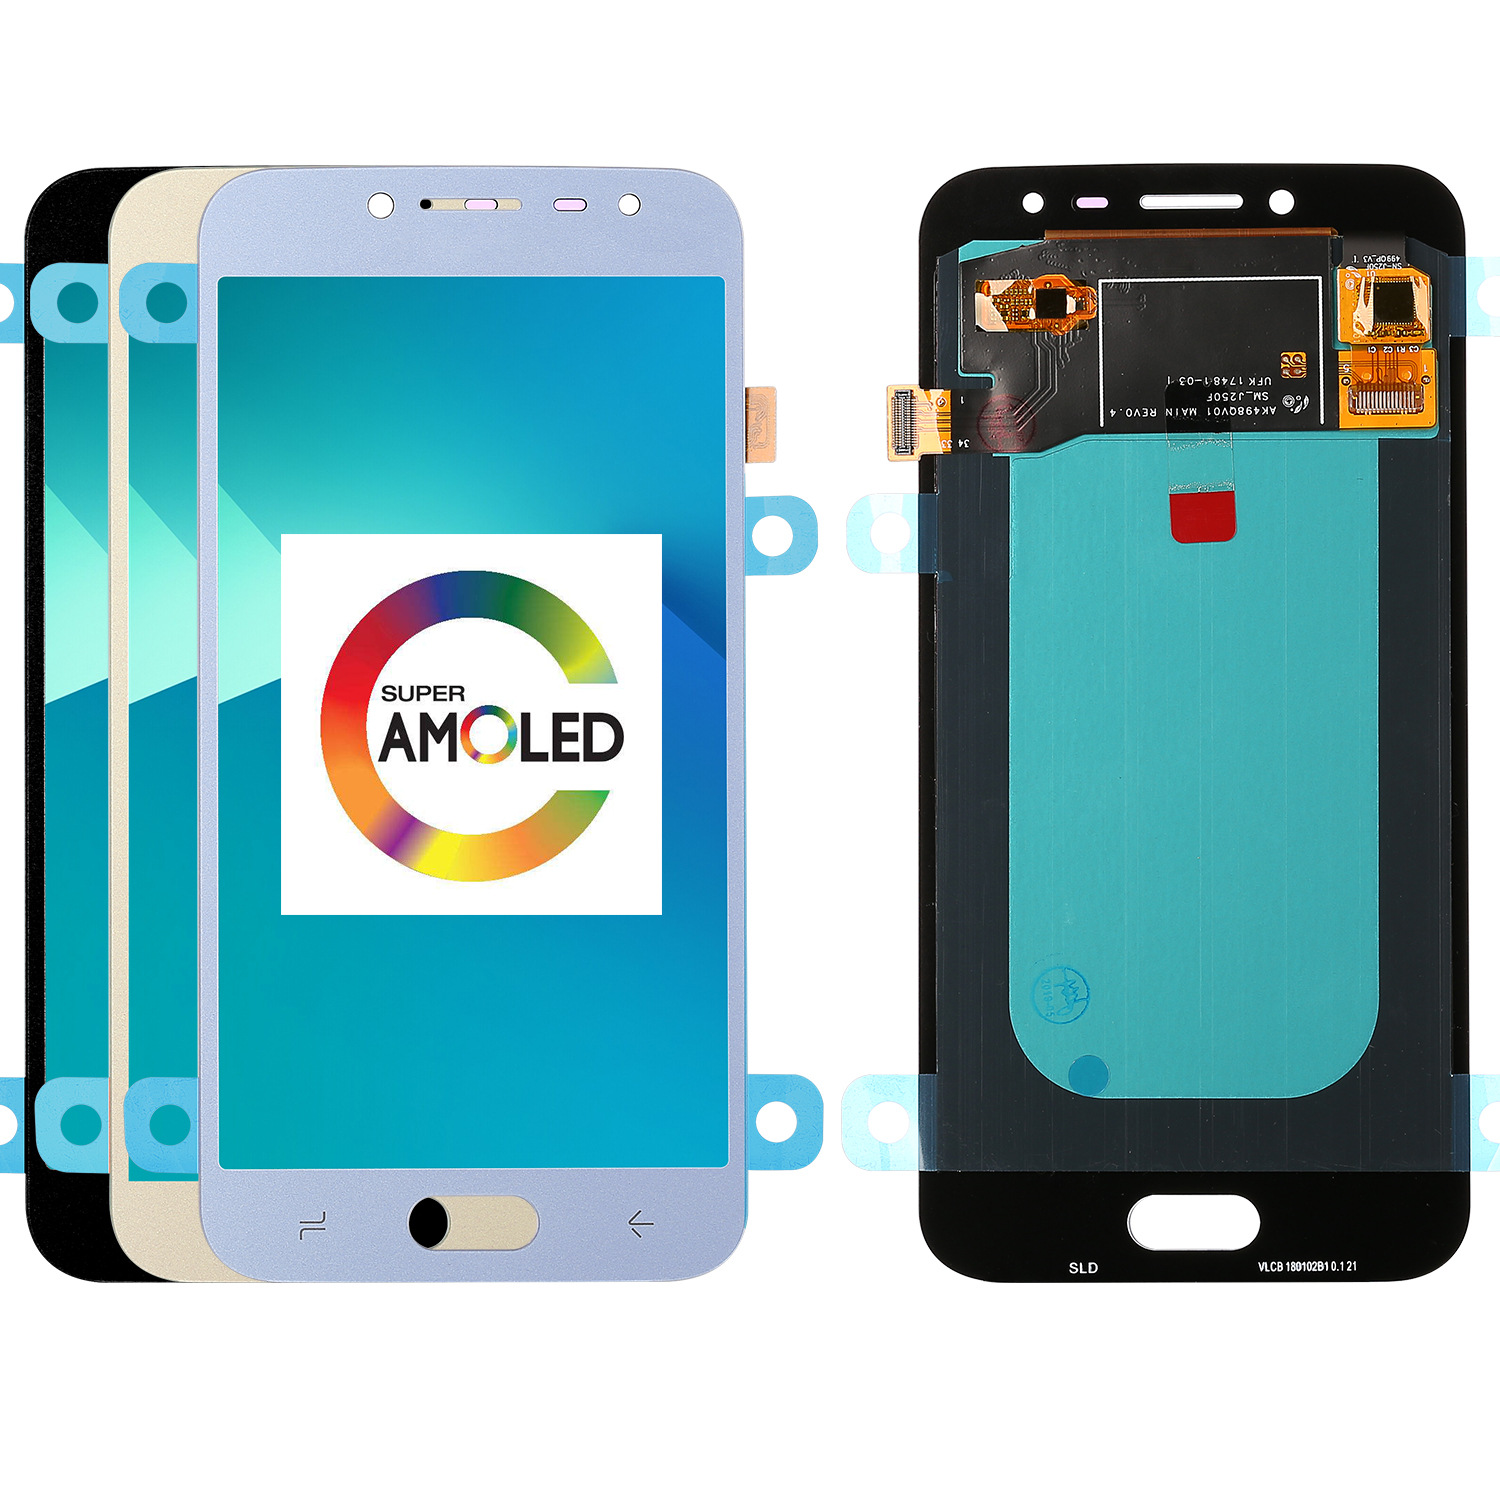 100% Tested Working Super AMOLED LCD For Samsung Galaxy J2 pro 2018 J250 J250F LCD Display with Touch screen Digitizer Assembly100% Tested Working Super AMOLED LCD For Samsung Galaxy J2 pro 2018 J250 J250F LCD Display with Touch screen Digitizer Assembly